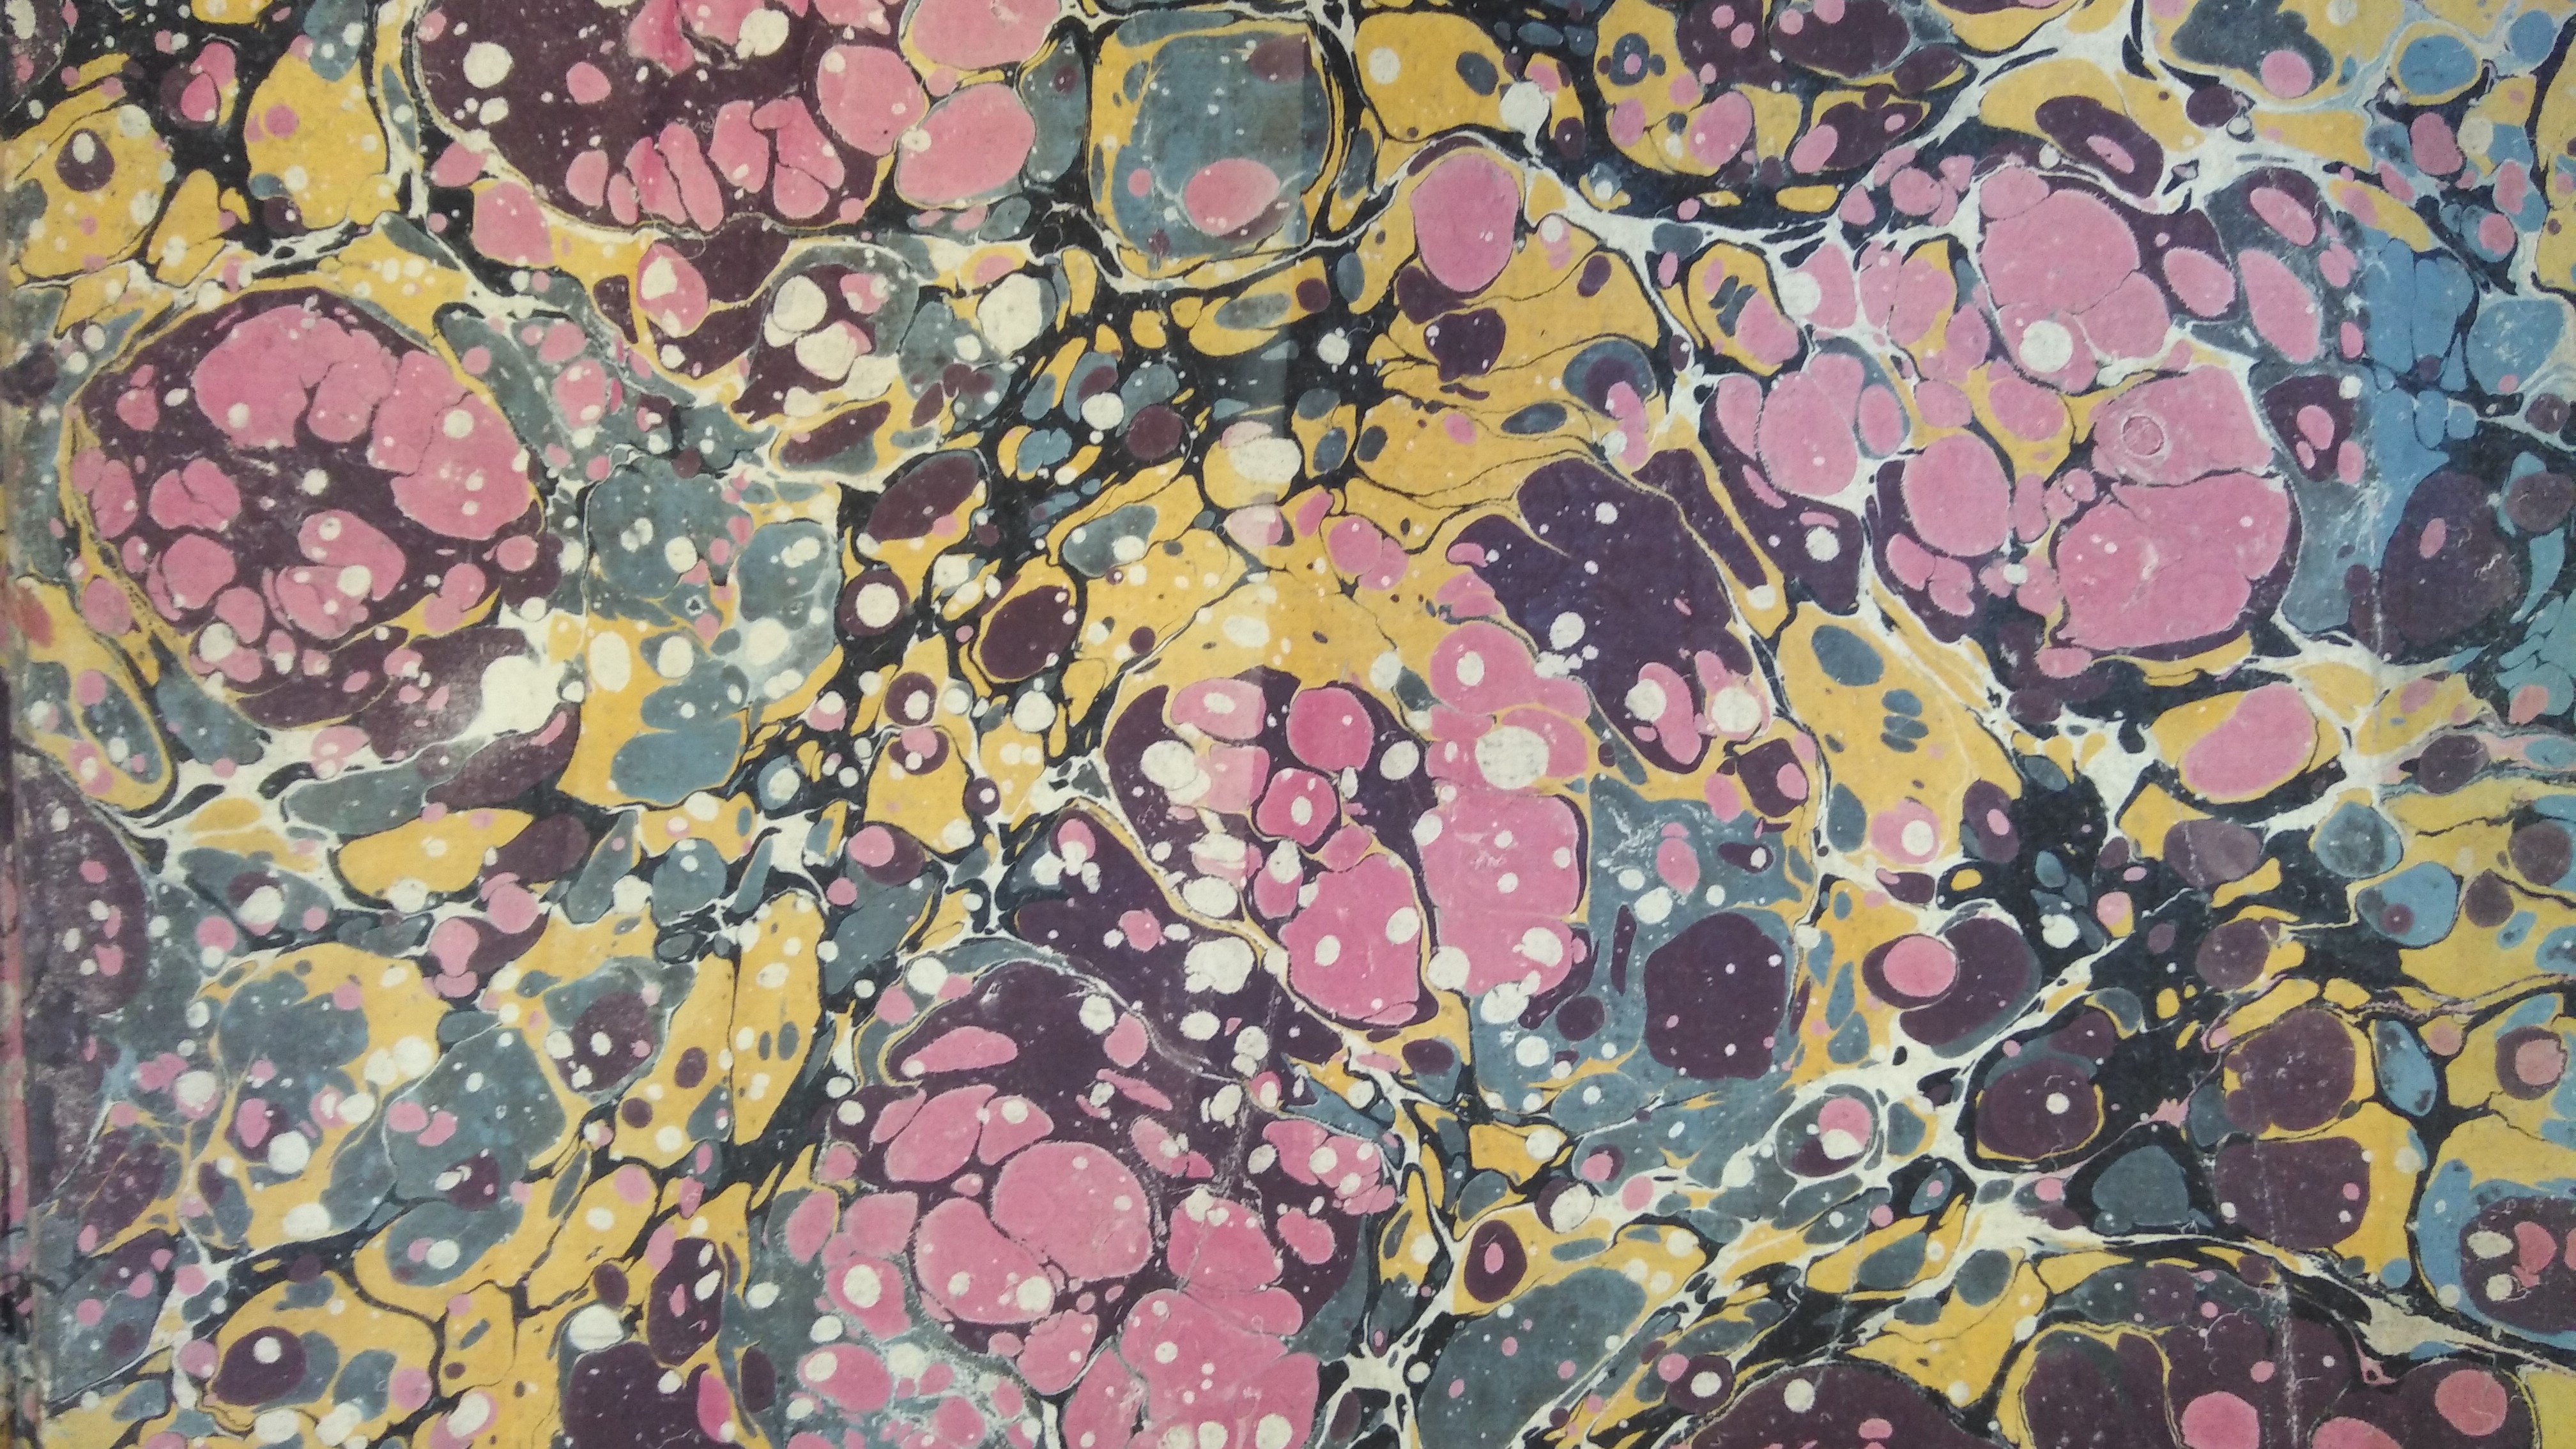 Marbled paper from the inside cover of an 18th century book